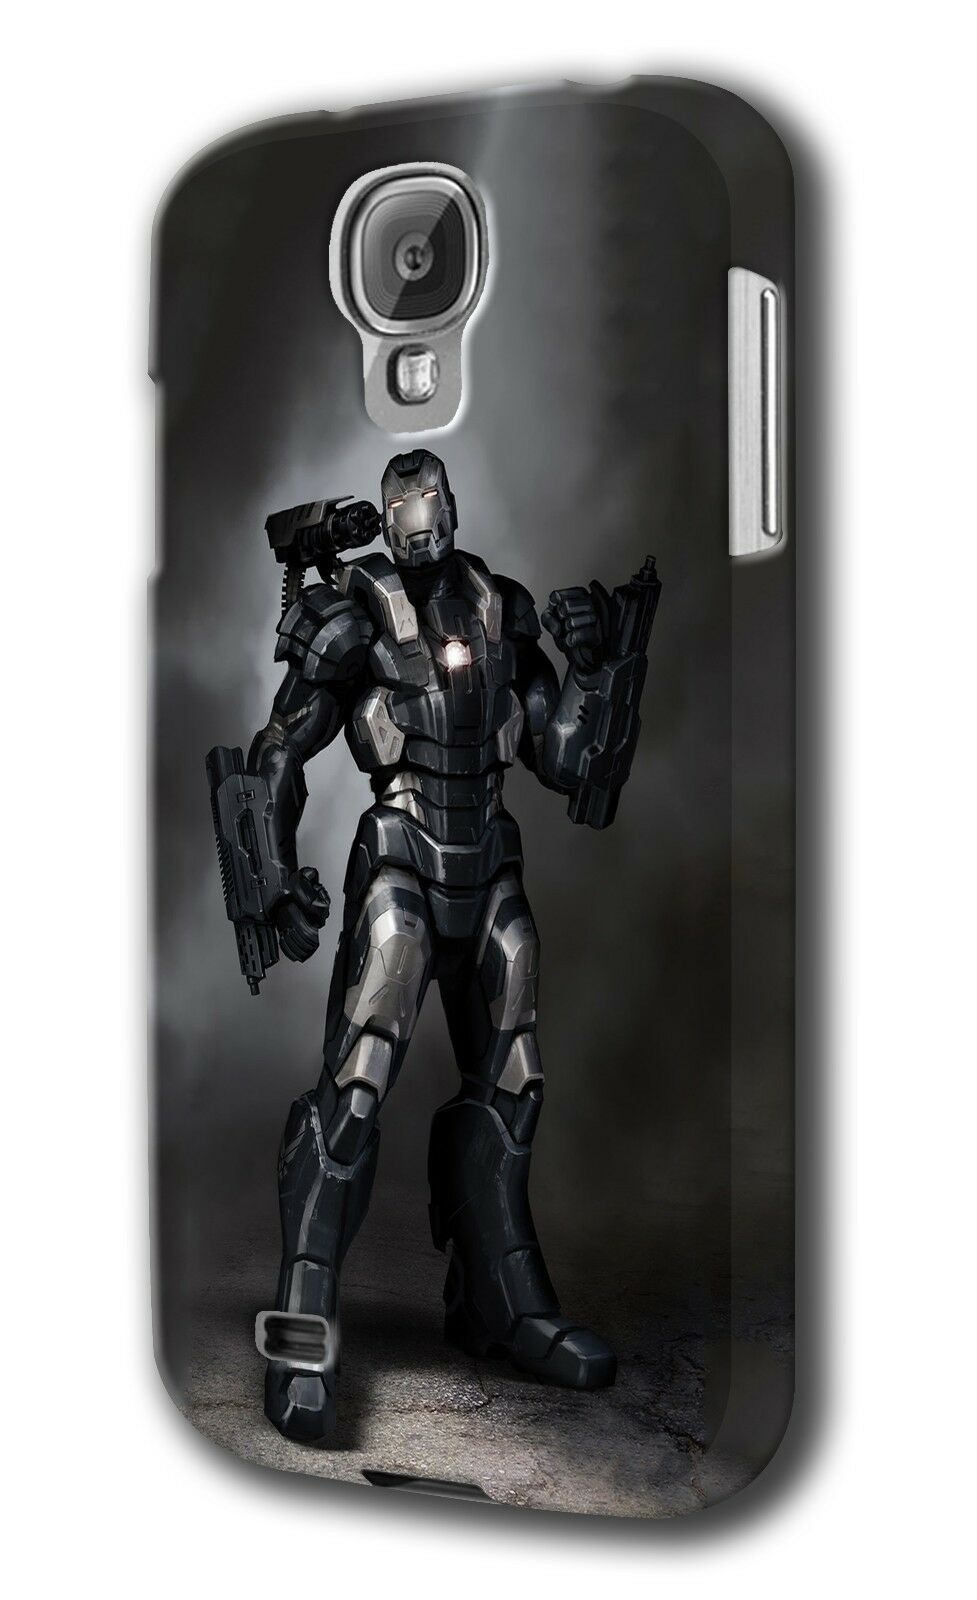 Iron Man Avengers Samsung Galaxy S4 S5 S6 Edge Note 3 4 Case Cover Kids sg5